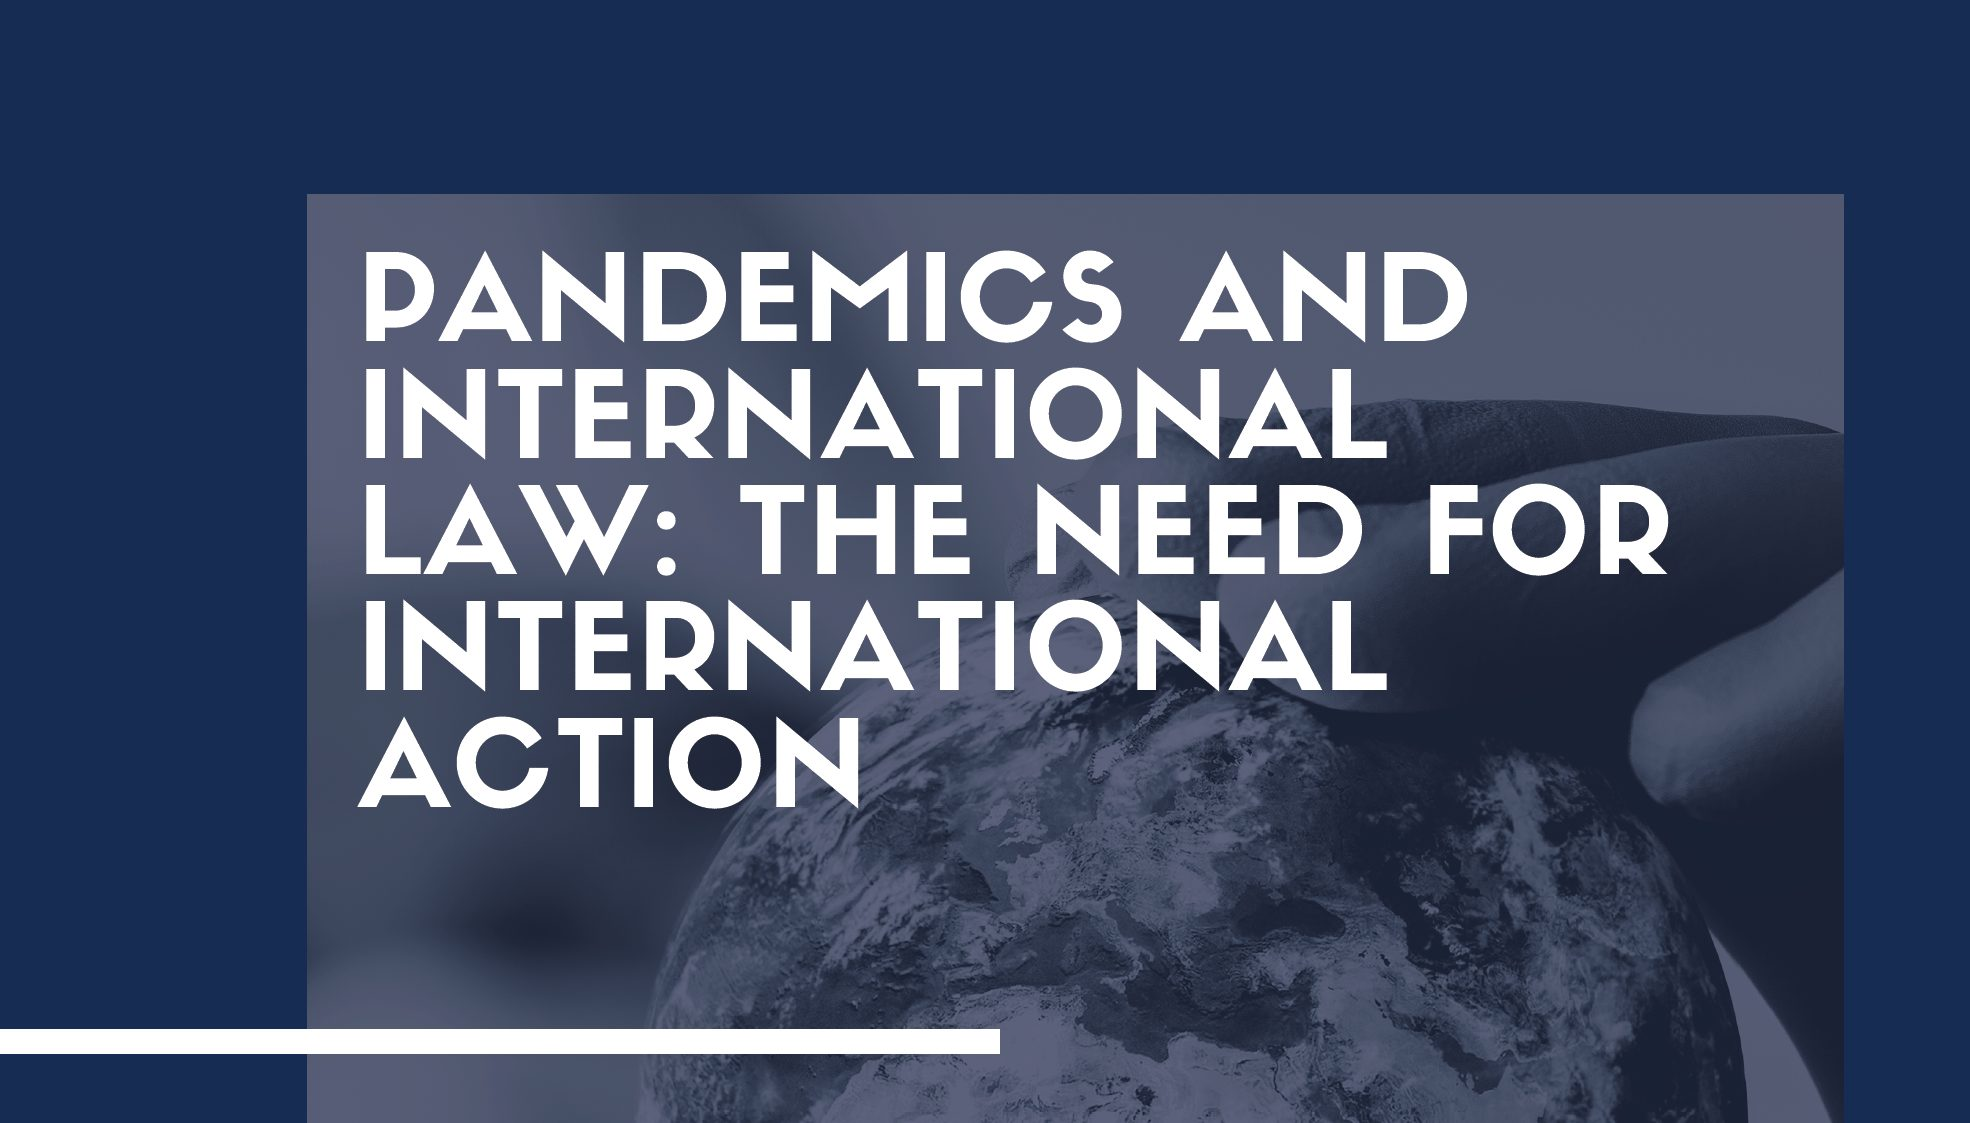 PANDEMICS AND INTERNATIONAL LAW